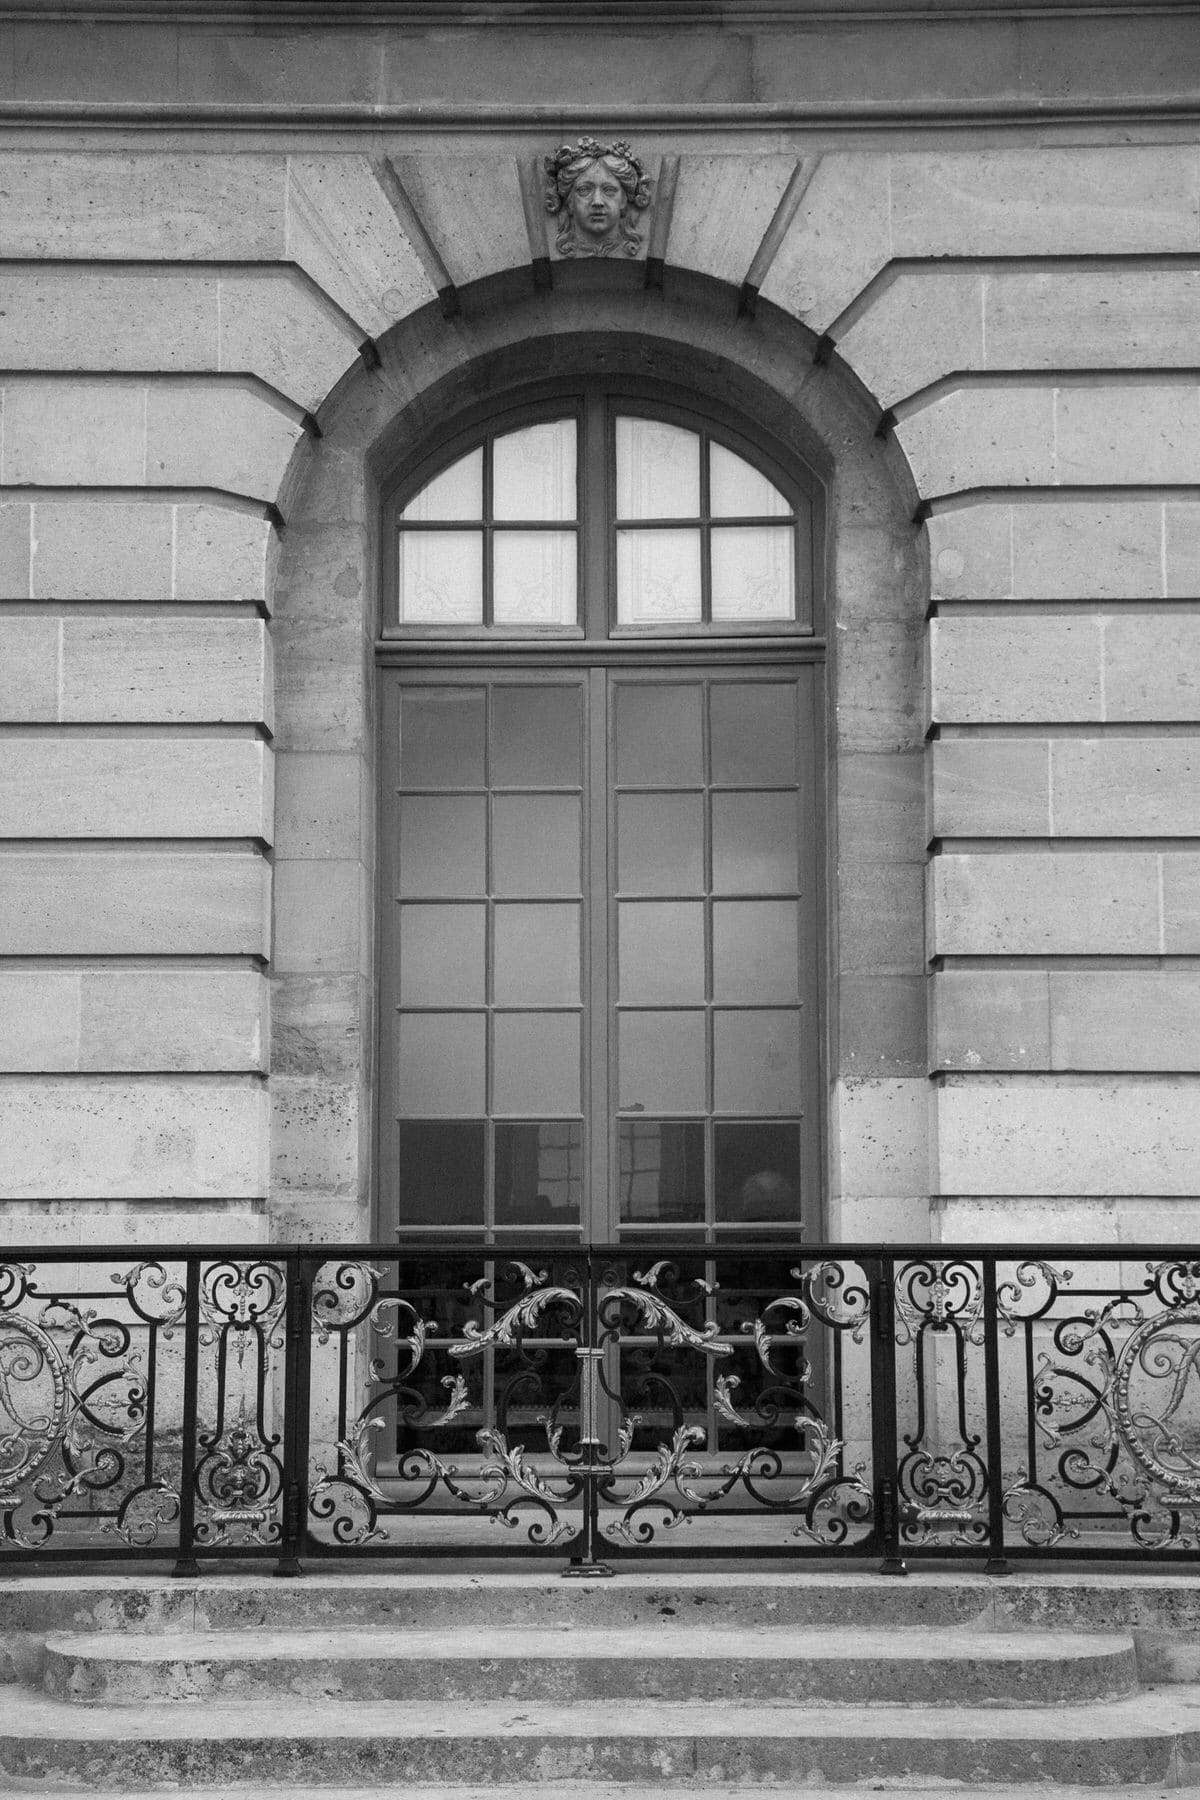 Palace-of-Versailles-France-black-and-white-fine-art-photography-by-Studio-L-photographer-Laura-Schneider-_4890